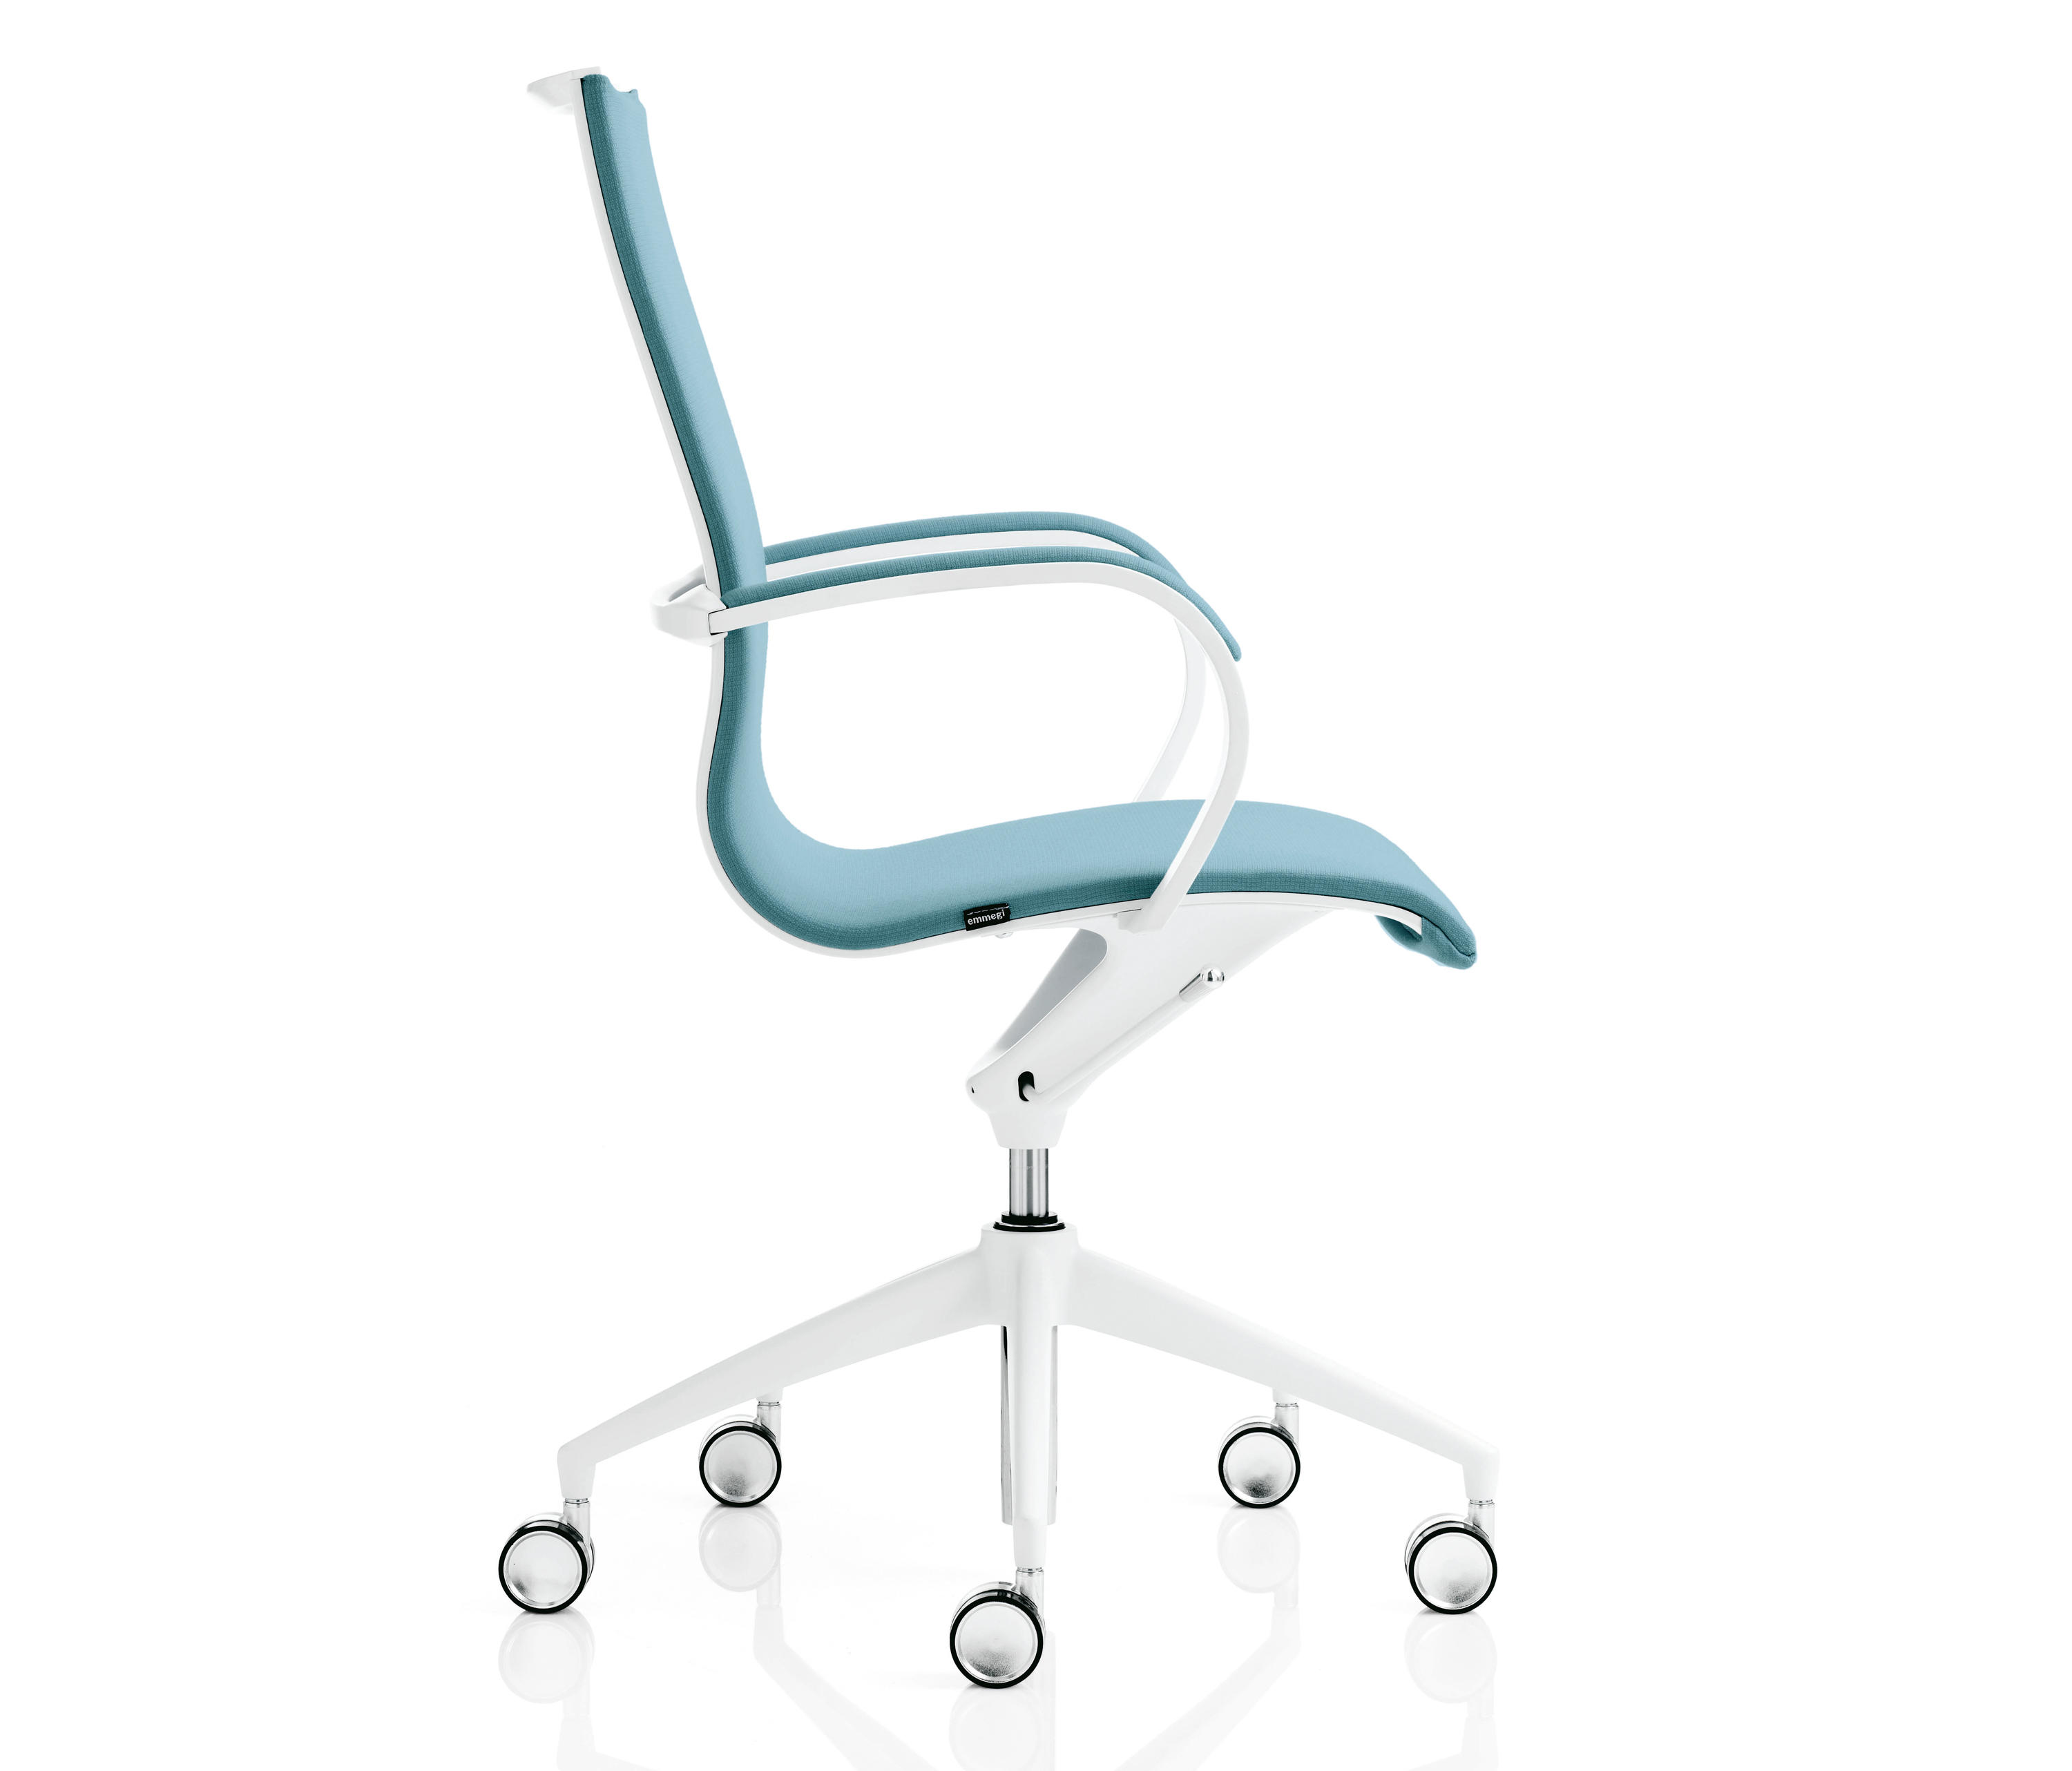 swivel chair em portugues covers or wedding 202 light sillas de oficina emmegi architonic